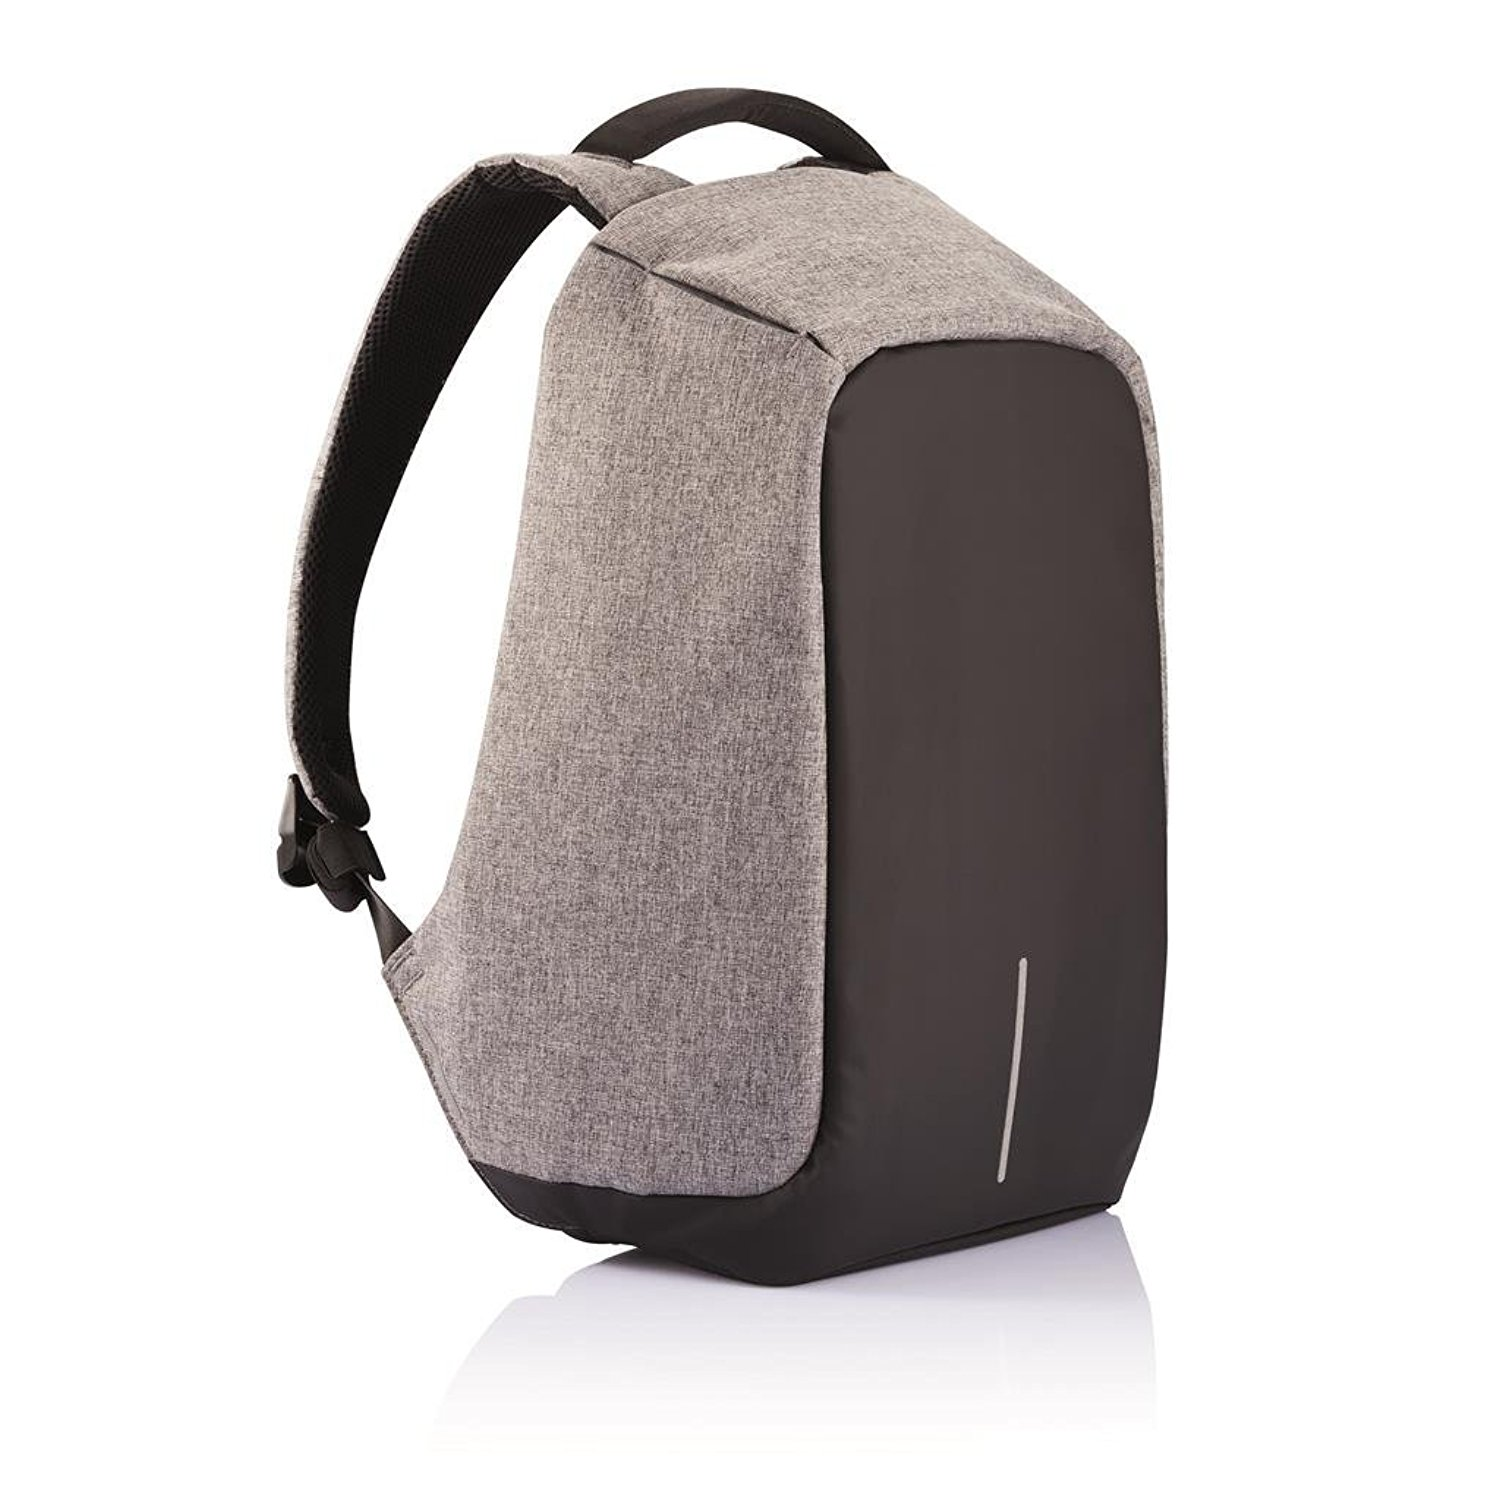 The original Bobby Anti-theft backpack - Bobby Anti-Theft backpack features cut-proof design, hidden zipper and secret pockets; Integrated USB; Charging port; Shockproof storage Design; illuminating safety strips; Water repellent fabric.